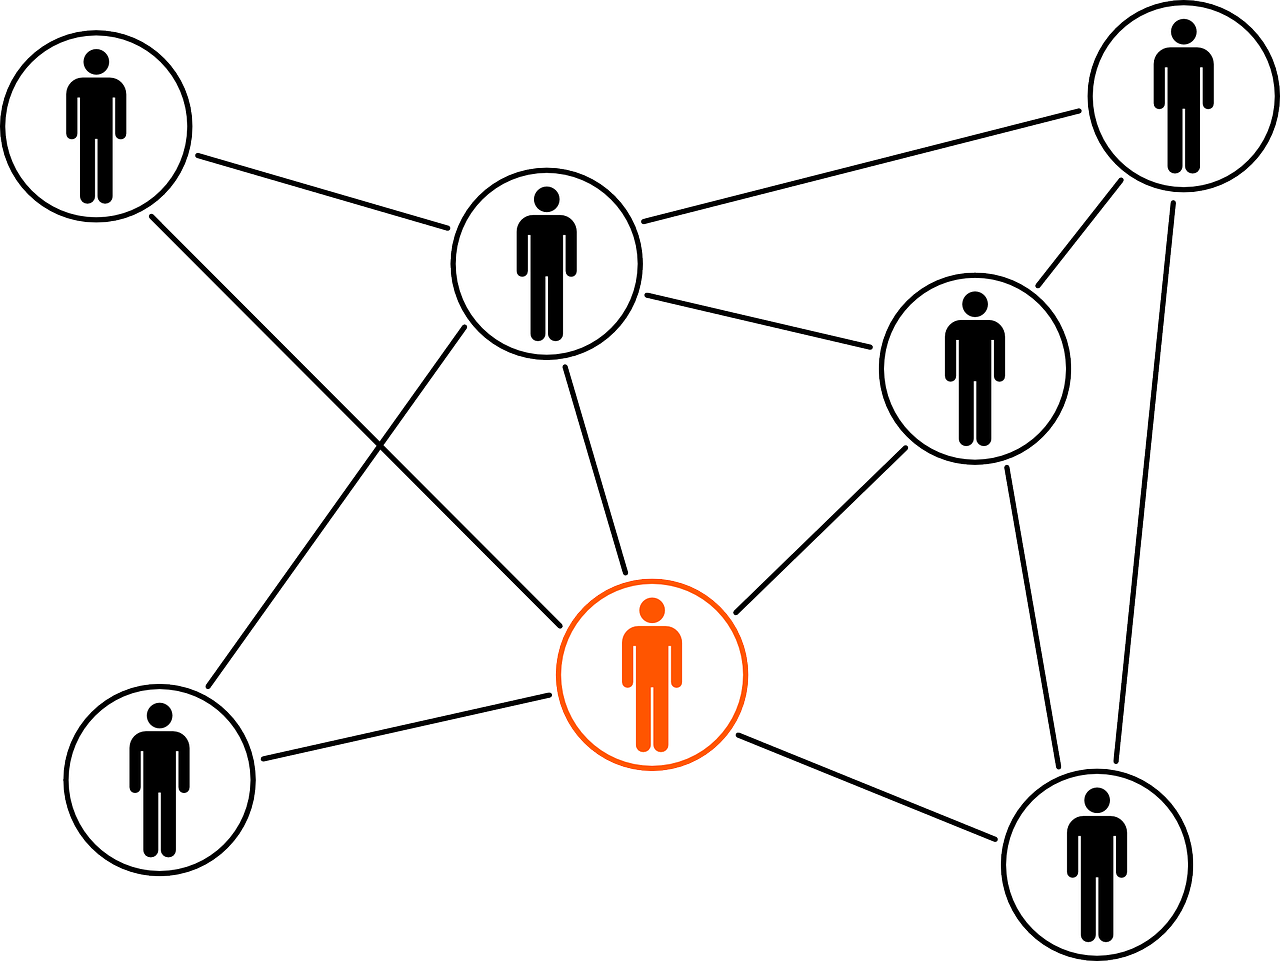 A network of people